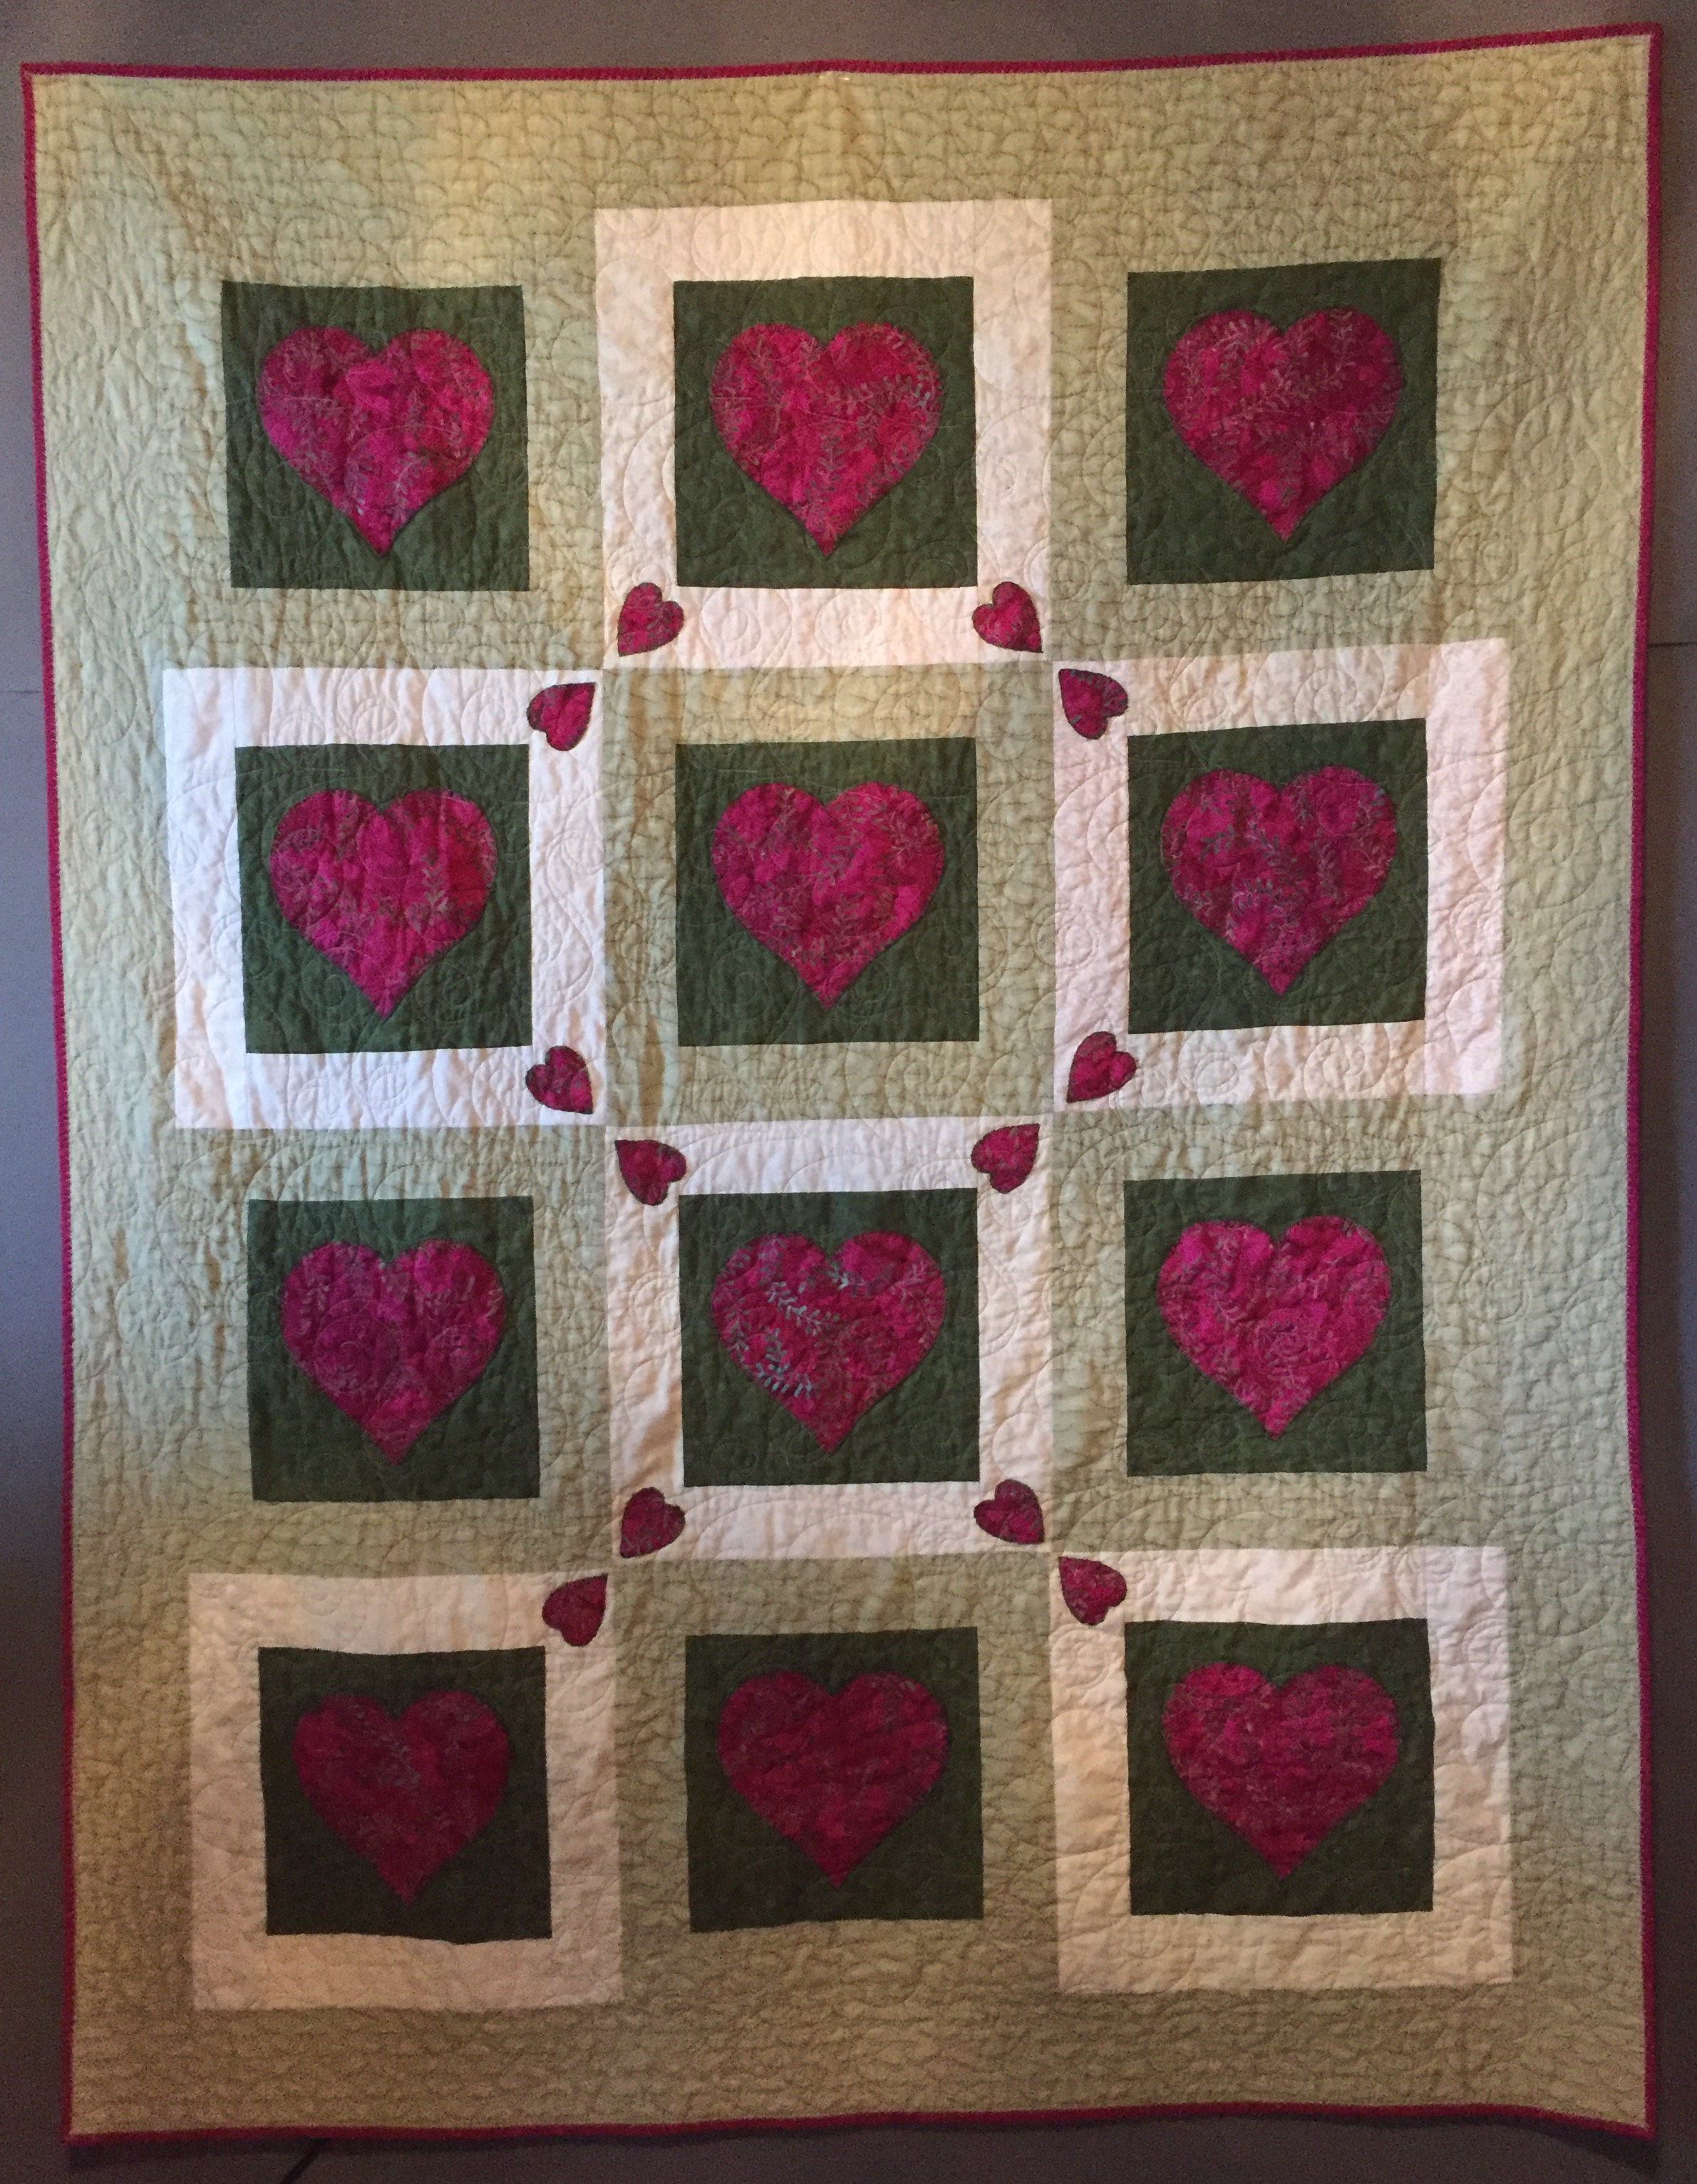 Pieced by Holly Harrington (CSQG), quilted by Stefanie Foster